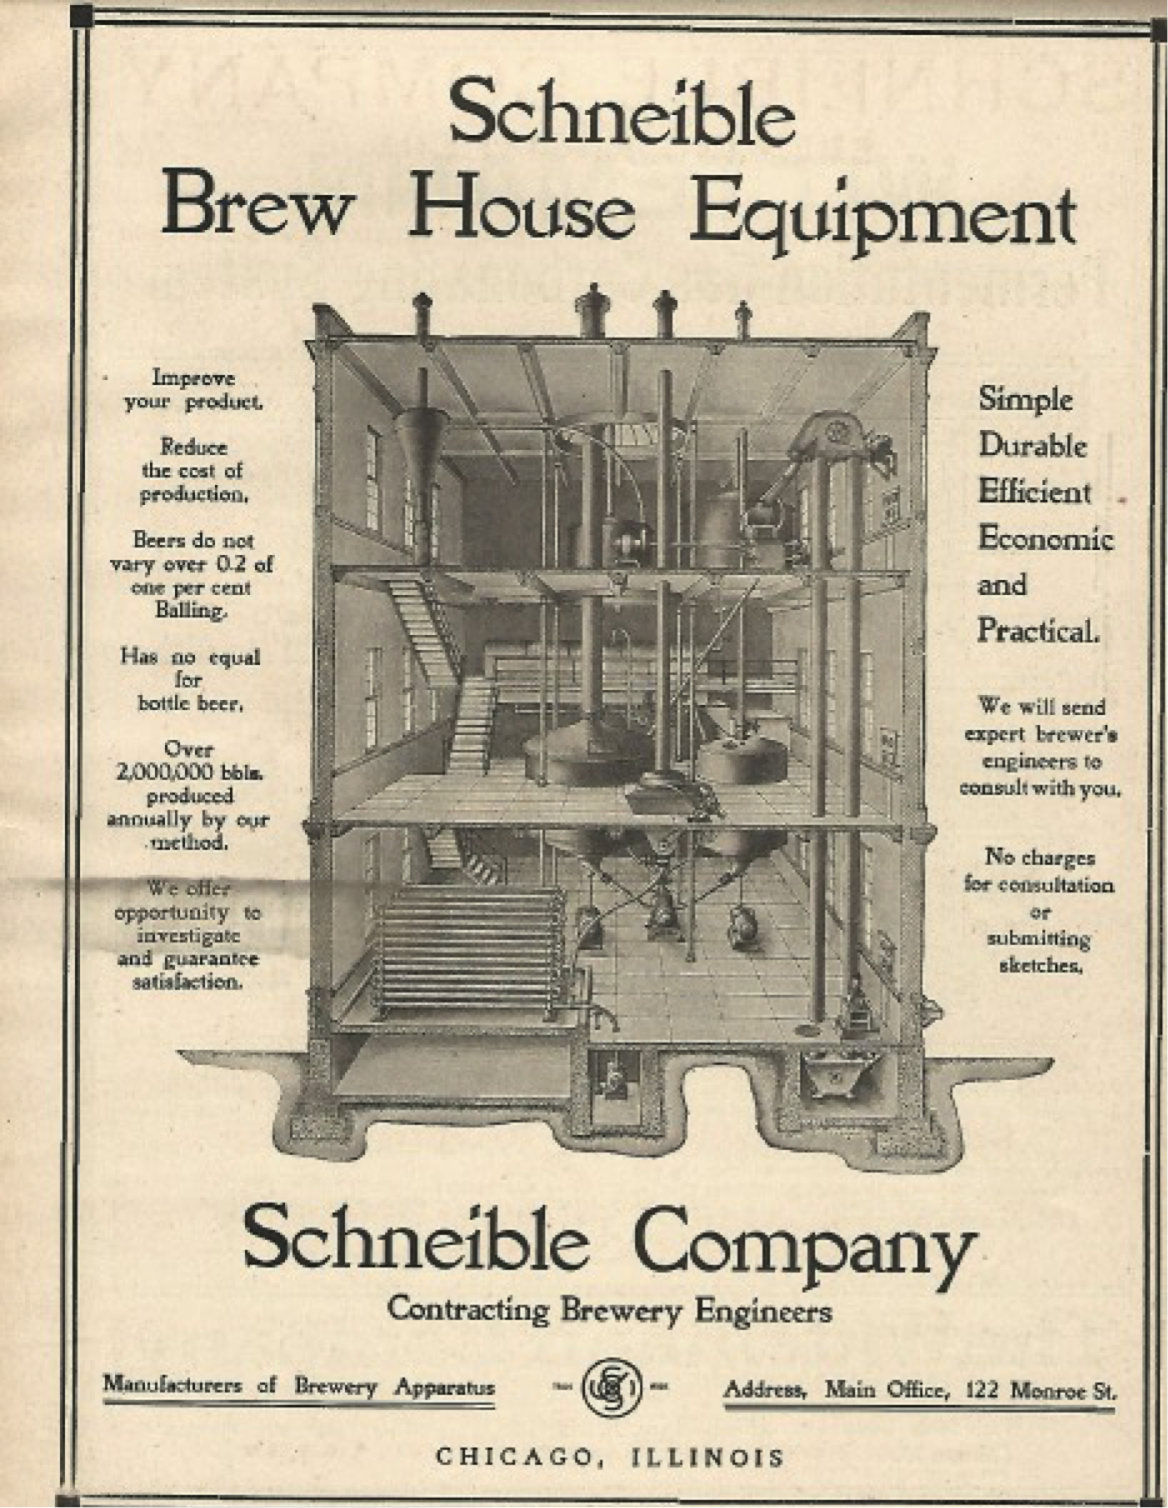 Compare this Brew House layout to today's Craft Breweries (including our own Forest City Brewery). Much has changed…..